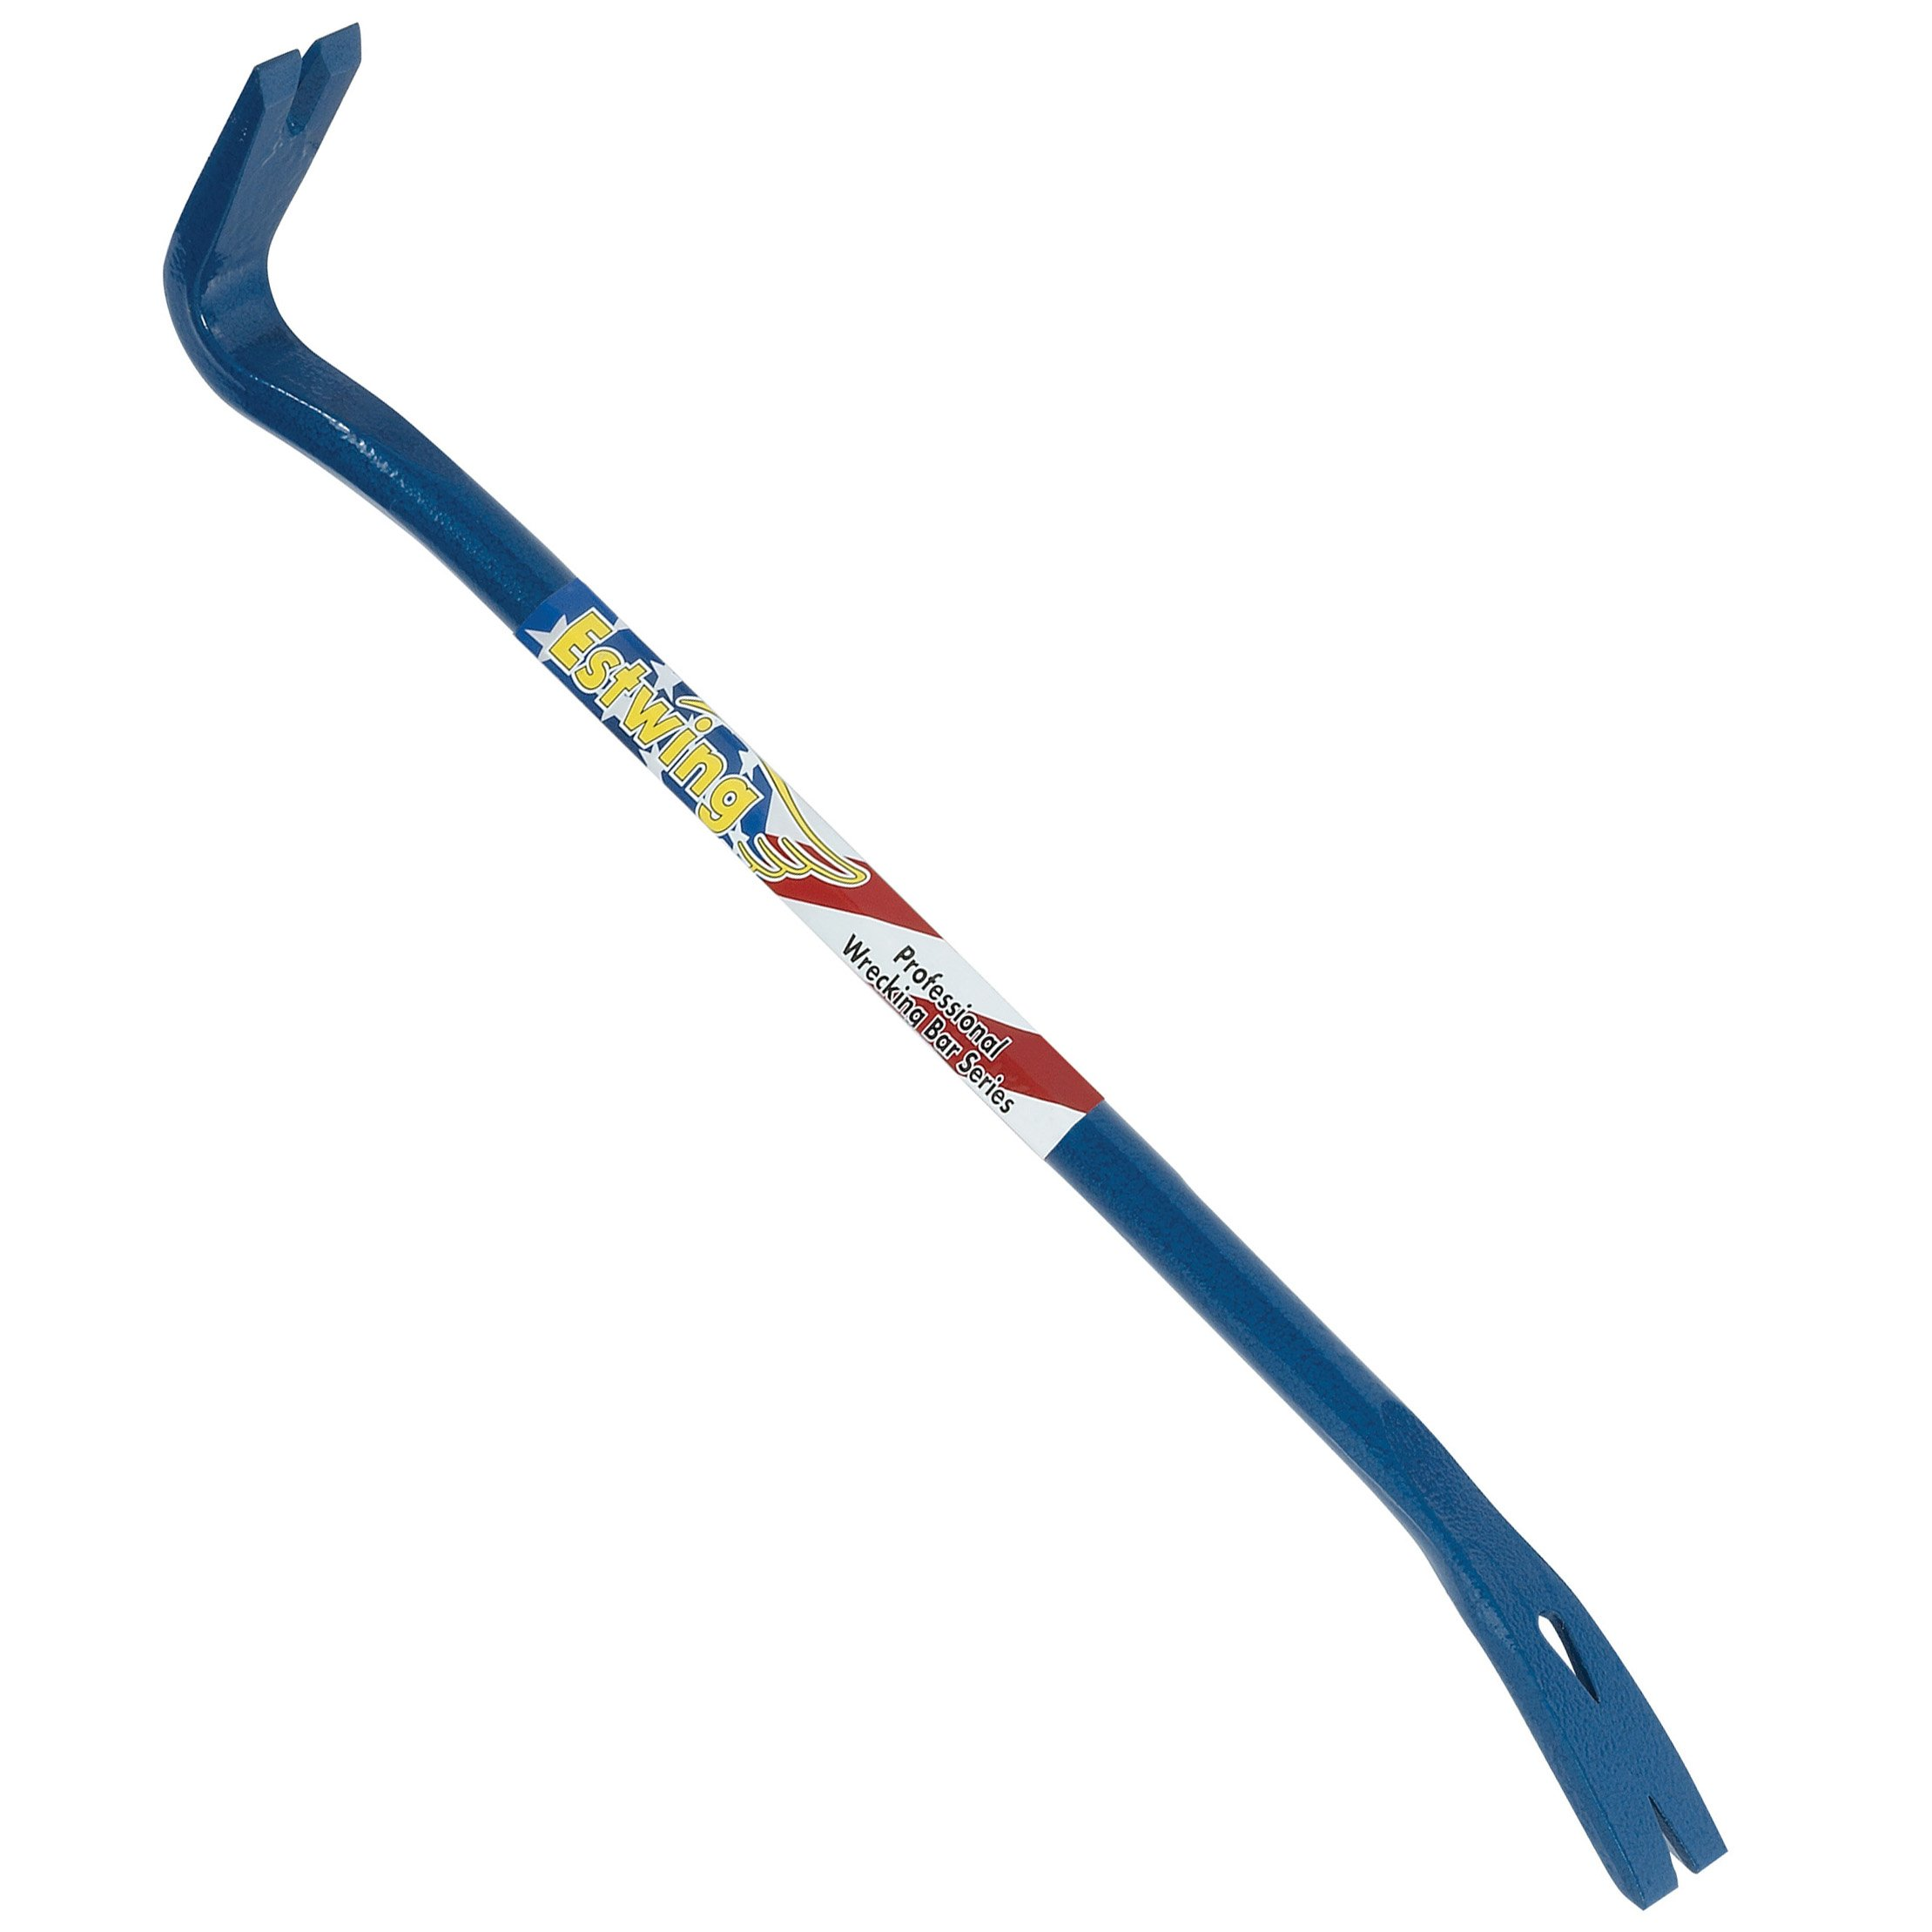 Estwing Gooseneck Wrecking Bar PRO - 24'' Pry Bar with Angled Chisel End & Forged Steel Construction - EWB-24PS